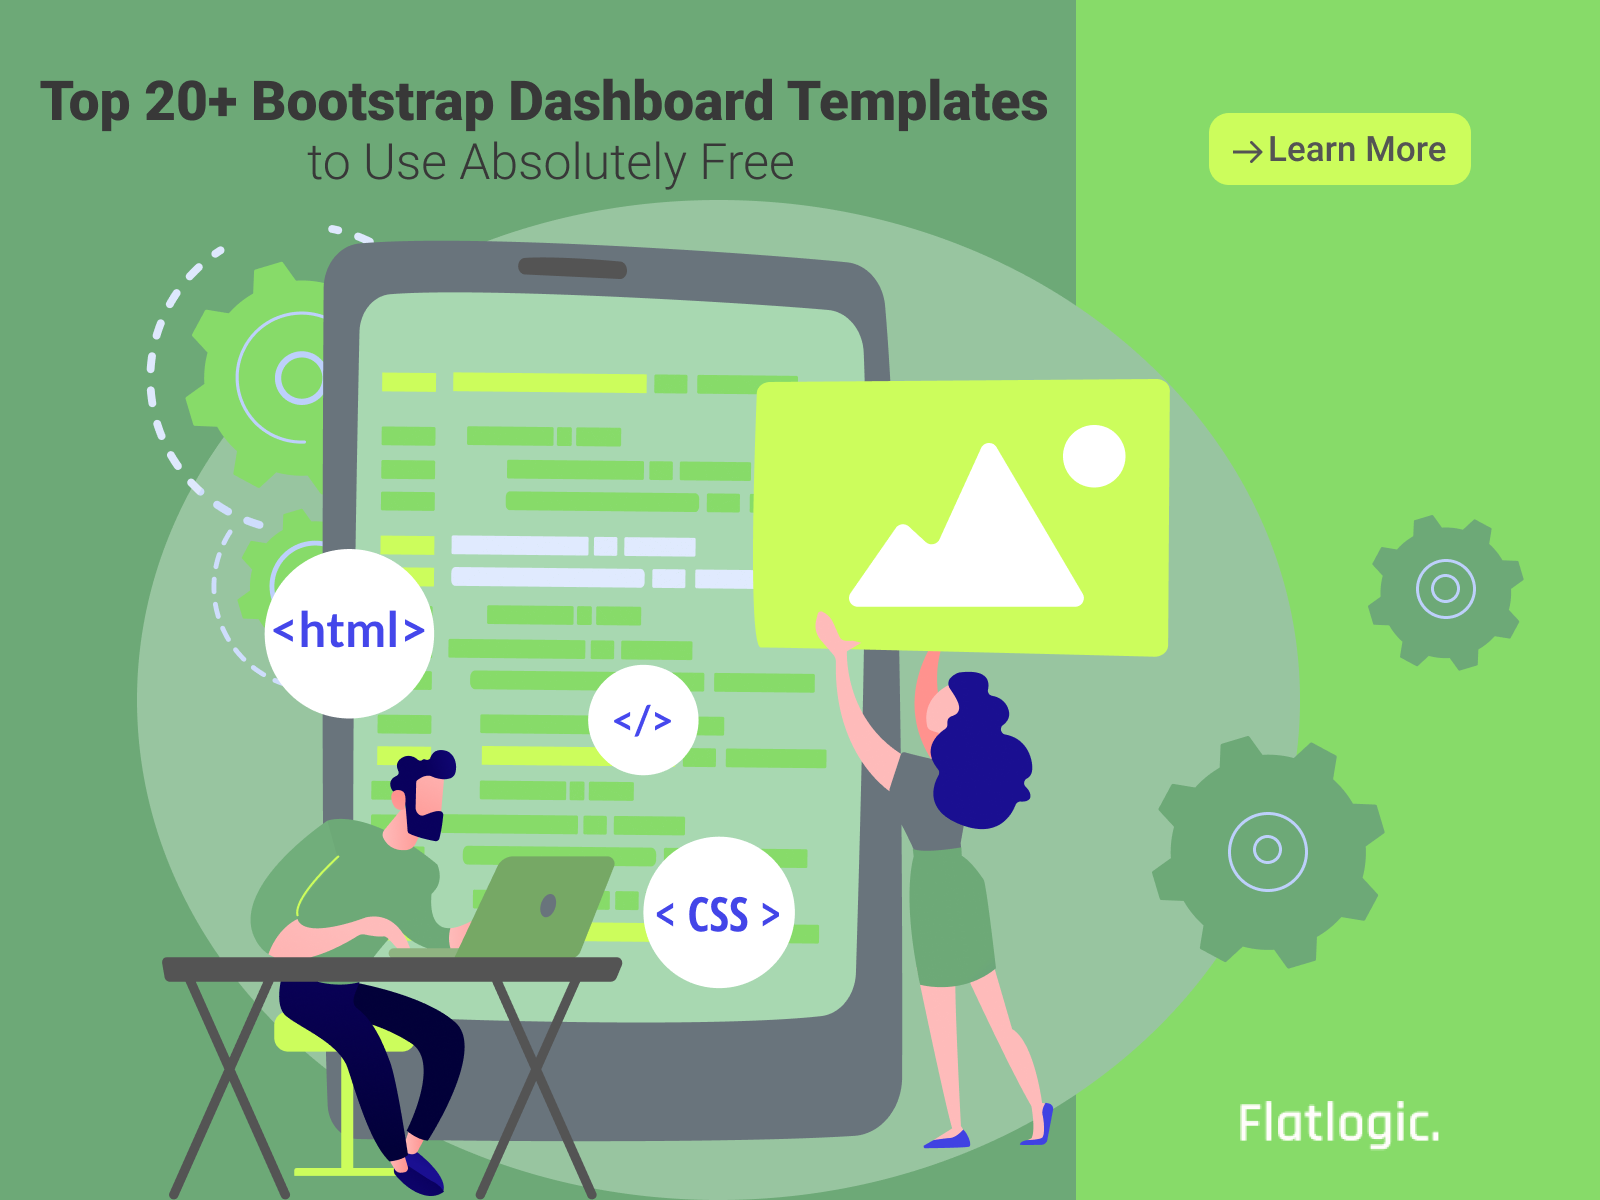 Top 20+ Bootstrap Dashboard Templates to Use Absolutely Free - Flatlogic Blog